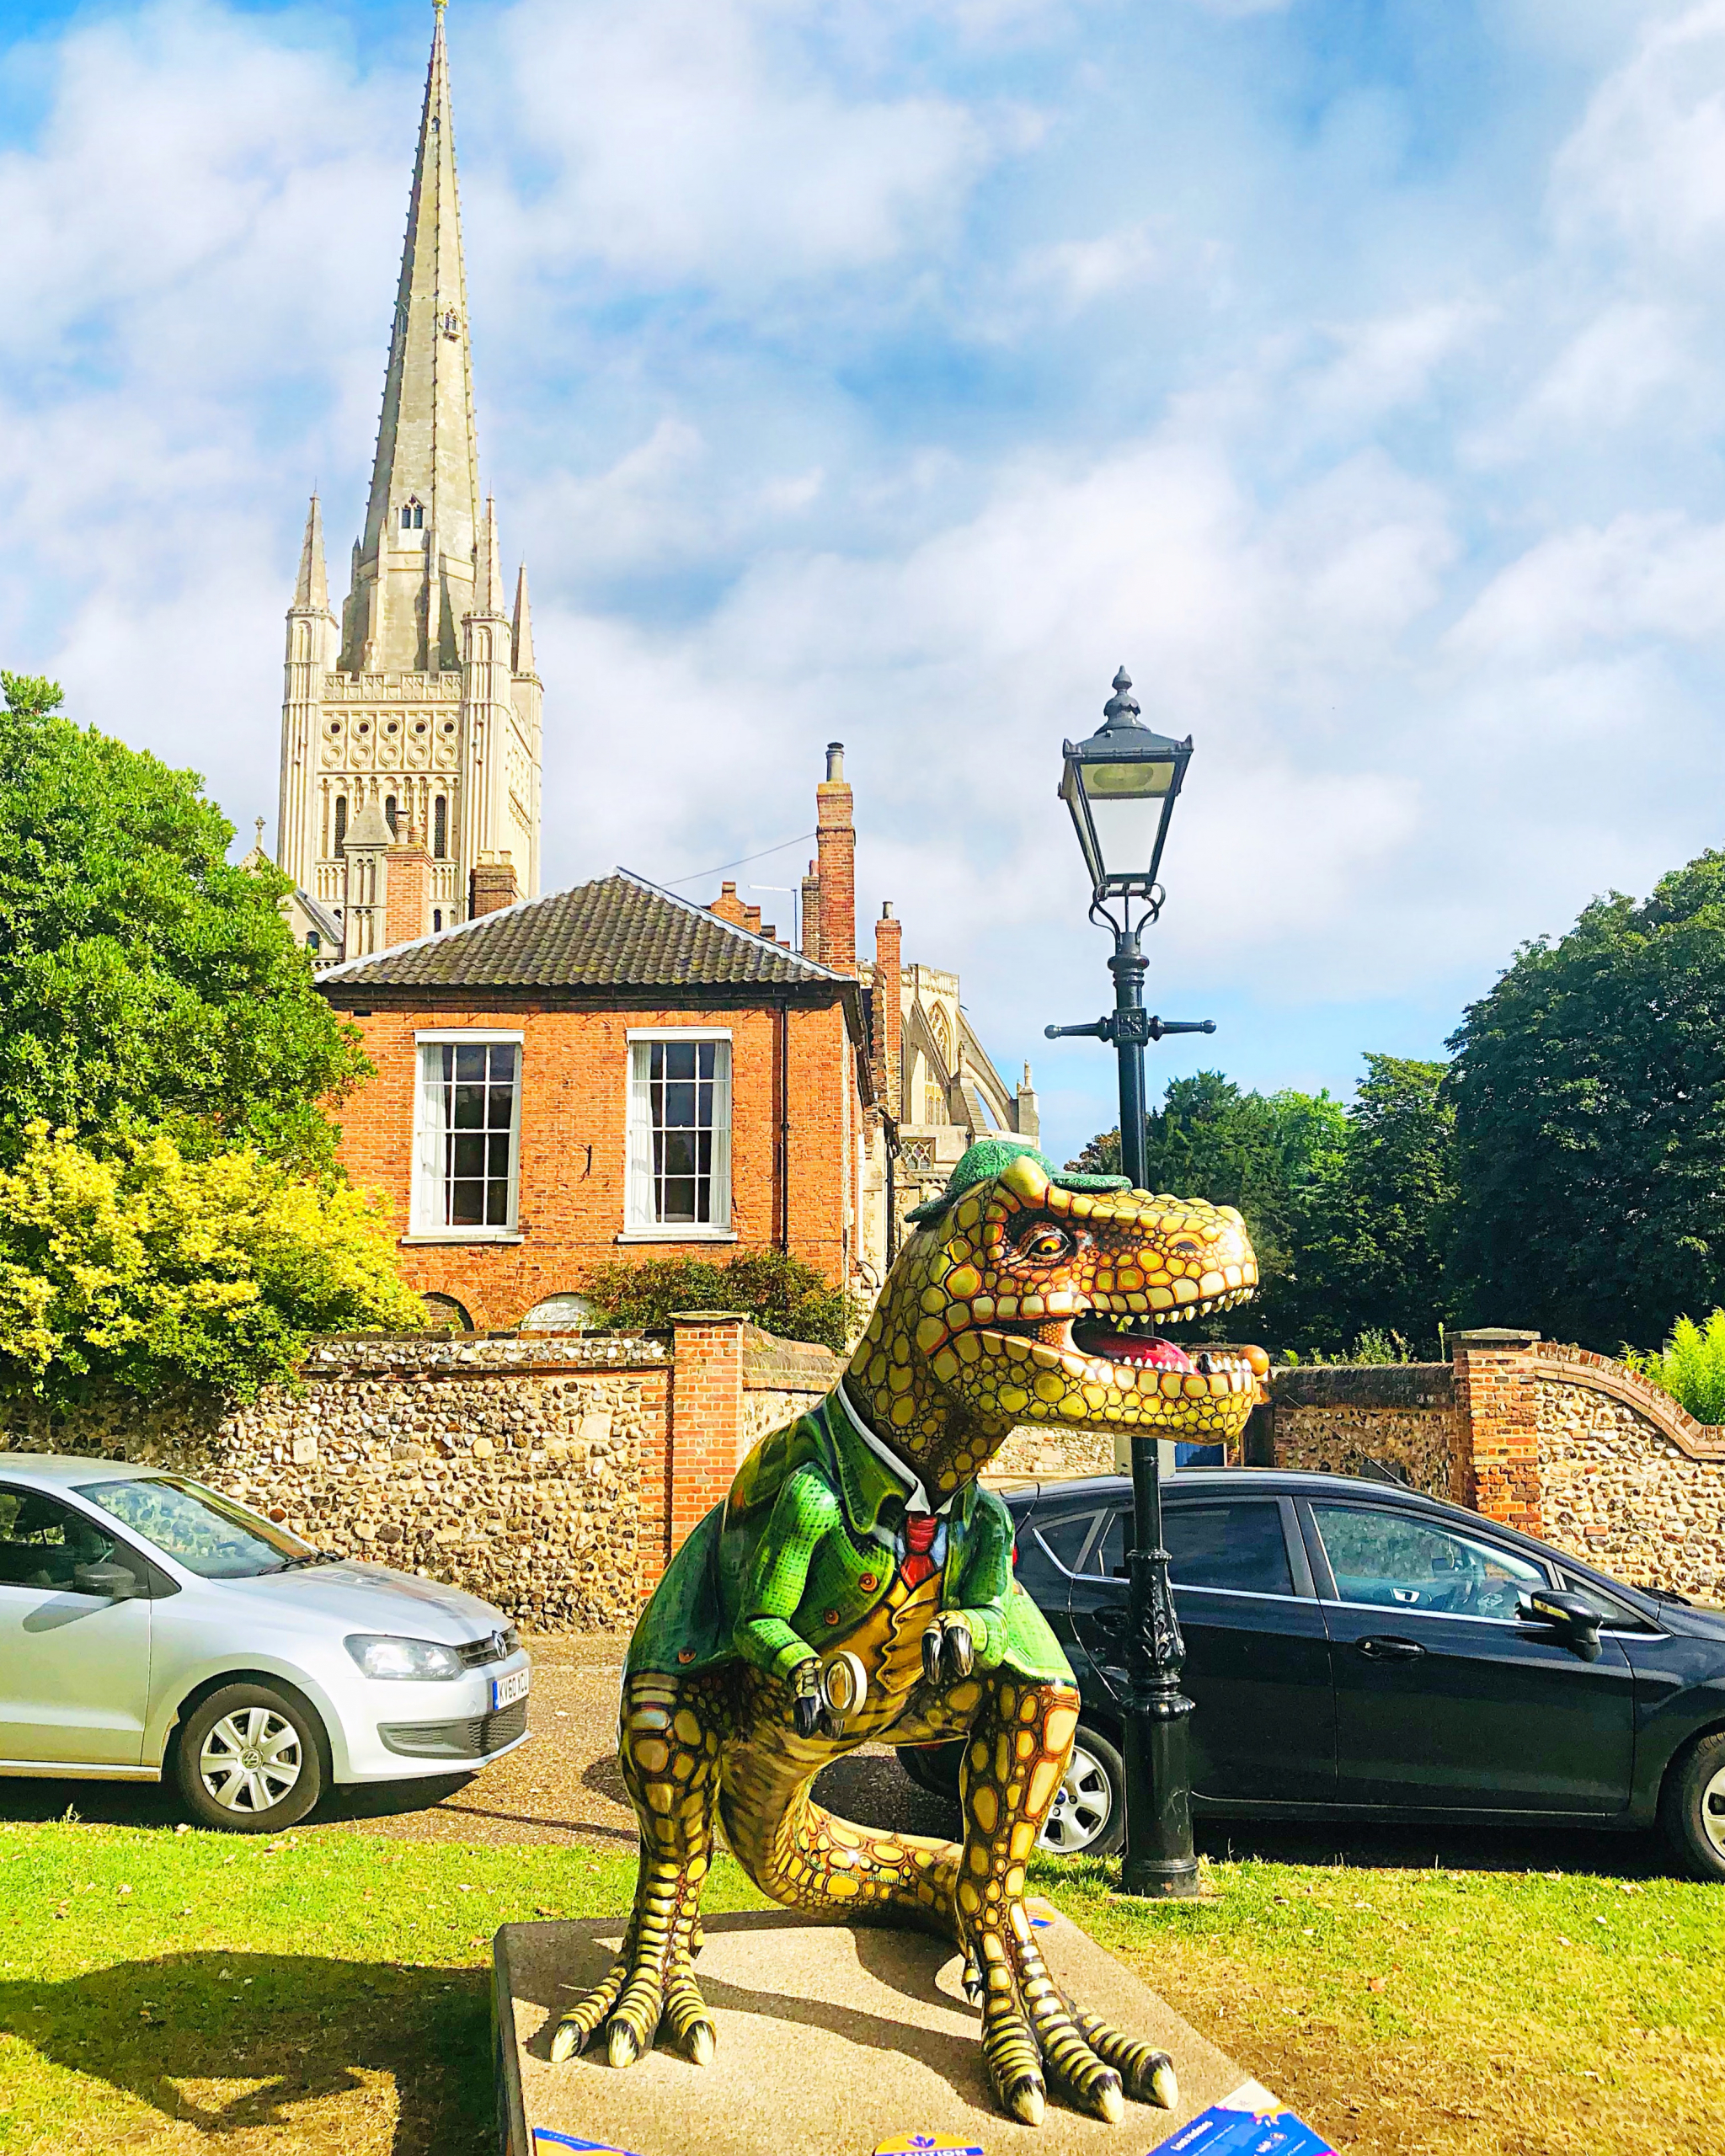 Lost Holmes T.rex sculpture with Norwich Cathedral in the background.